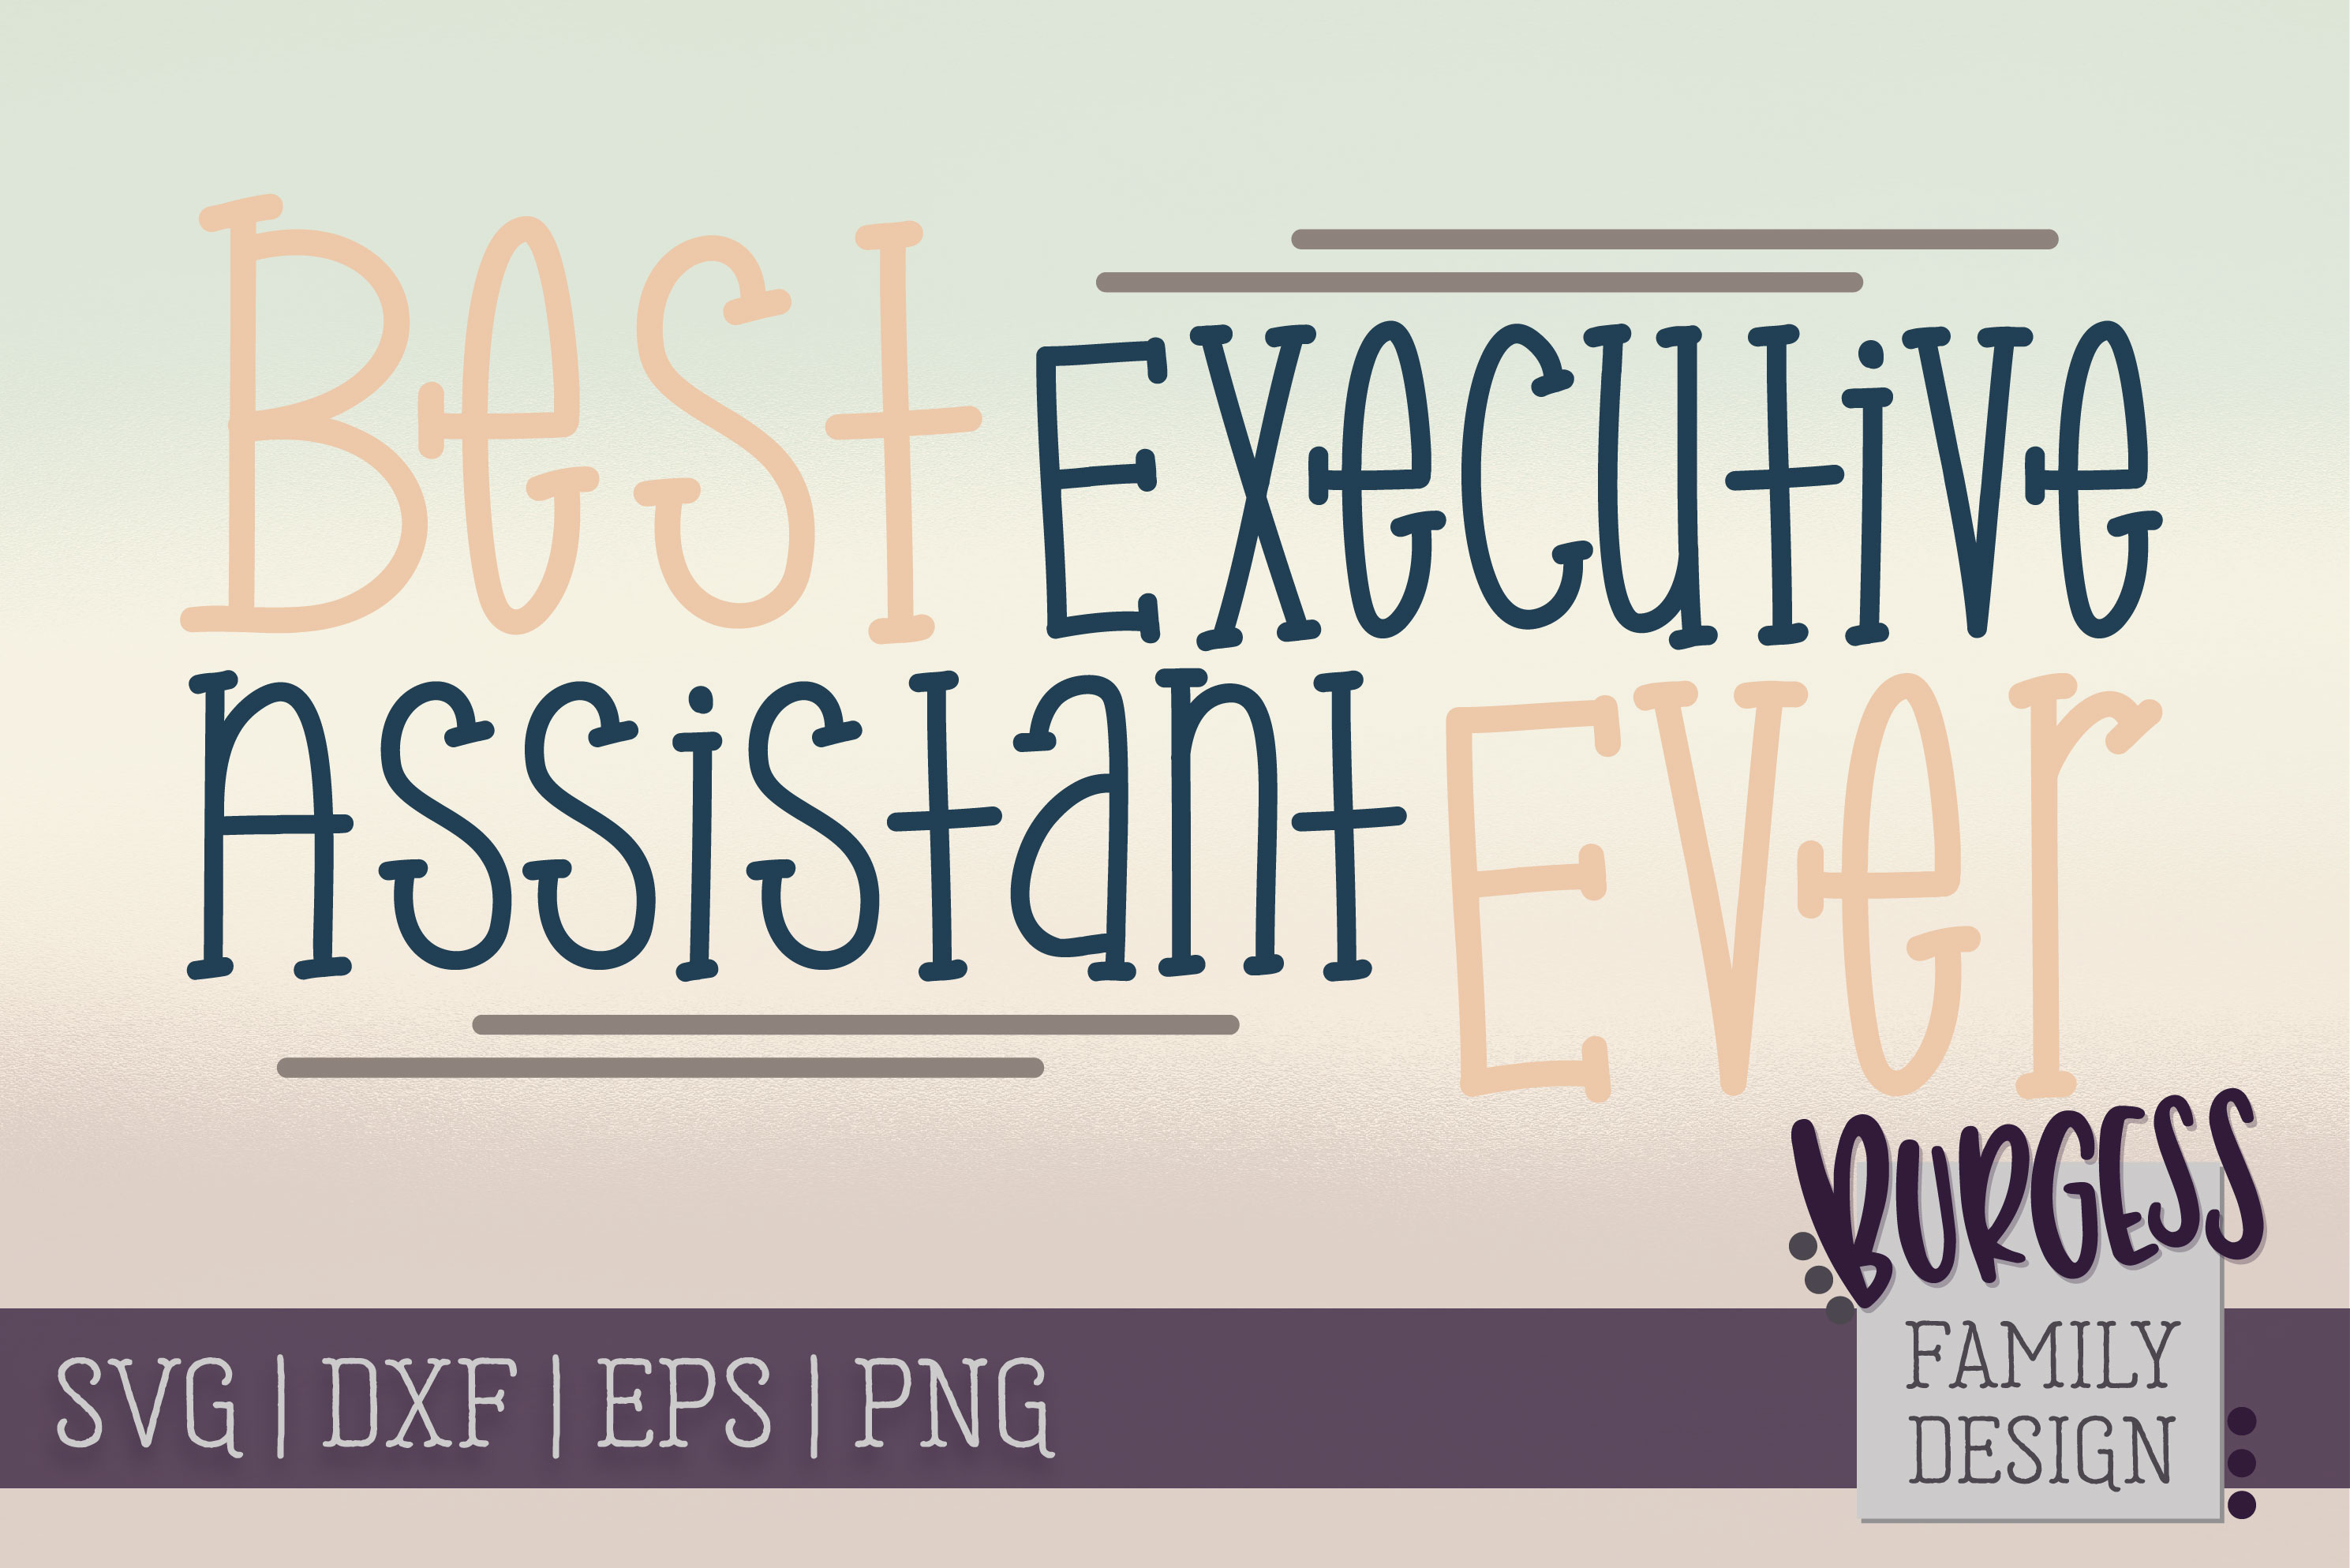 Best Executive Assistant Ever | SVG DXF EPS PNG JPEG example image 2